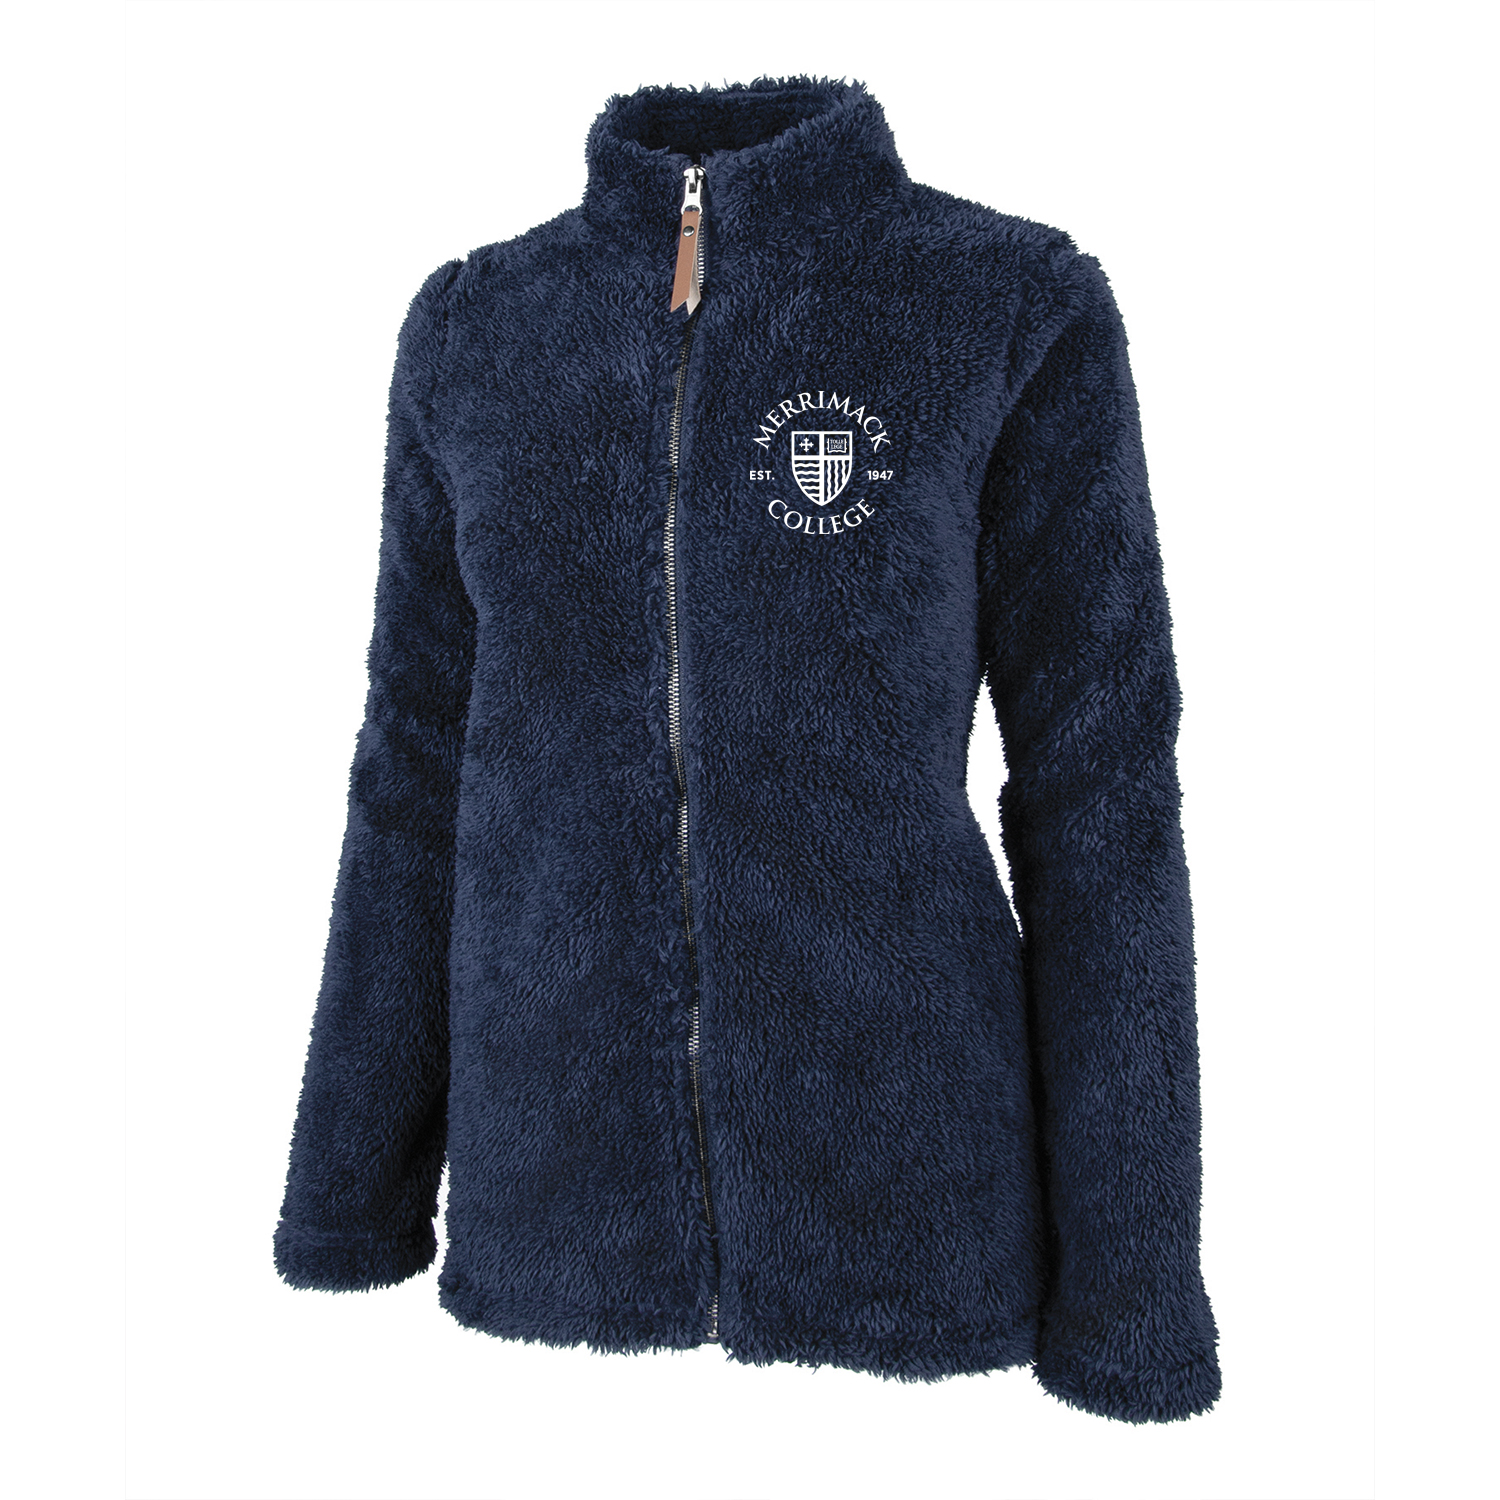 Navy Full Zip Sherpa